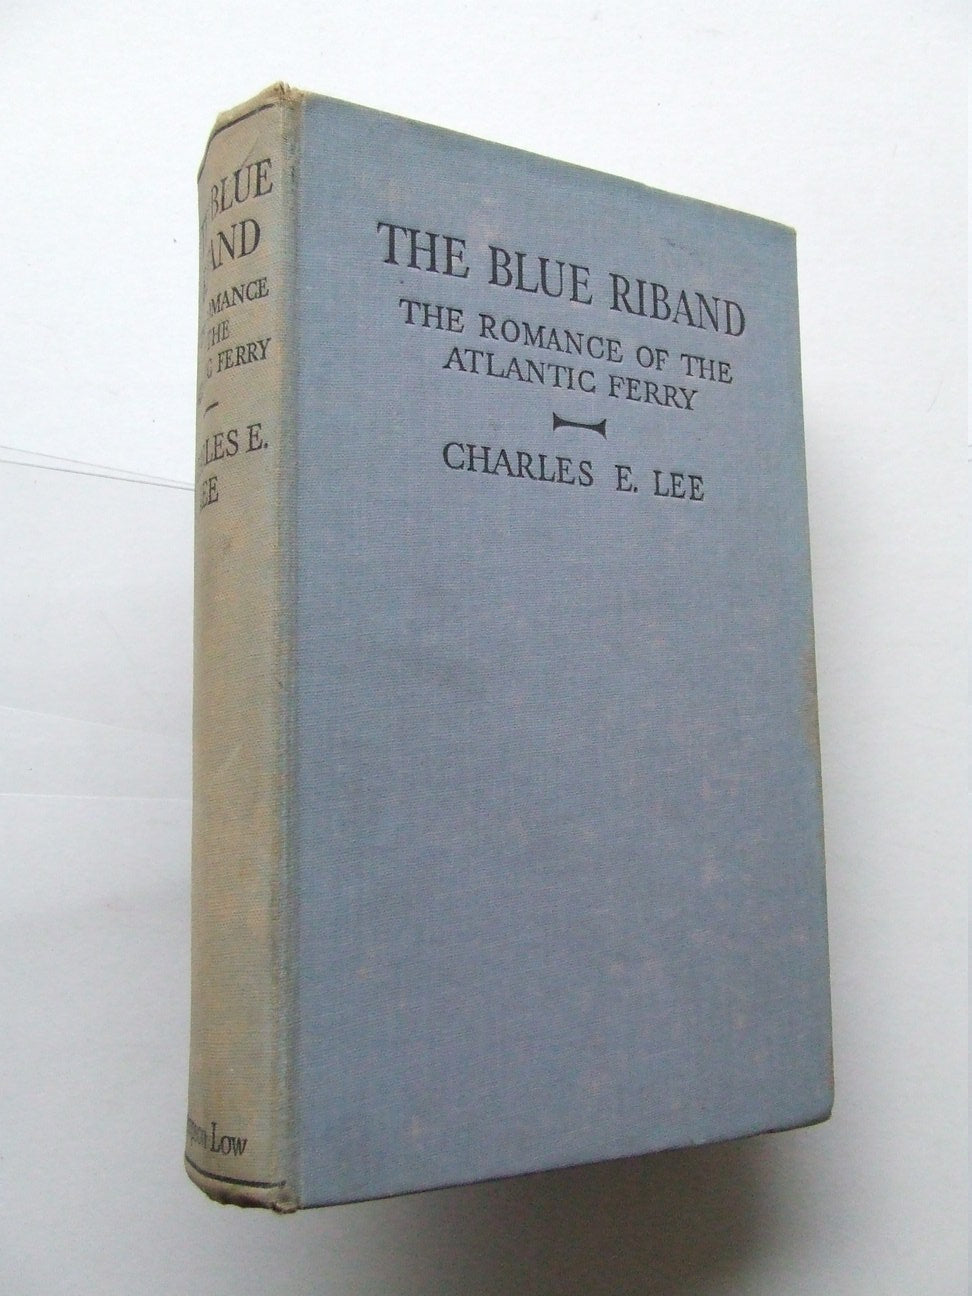 The Blue Riband, the romance of the Atlantic Ferry